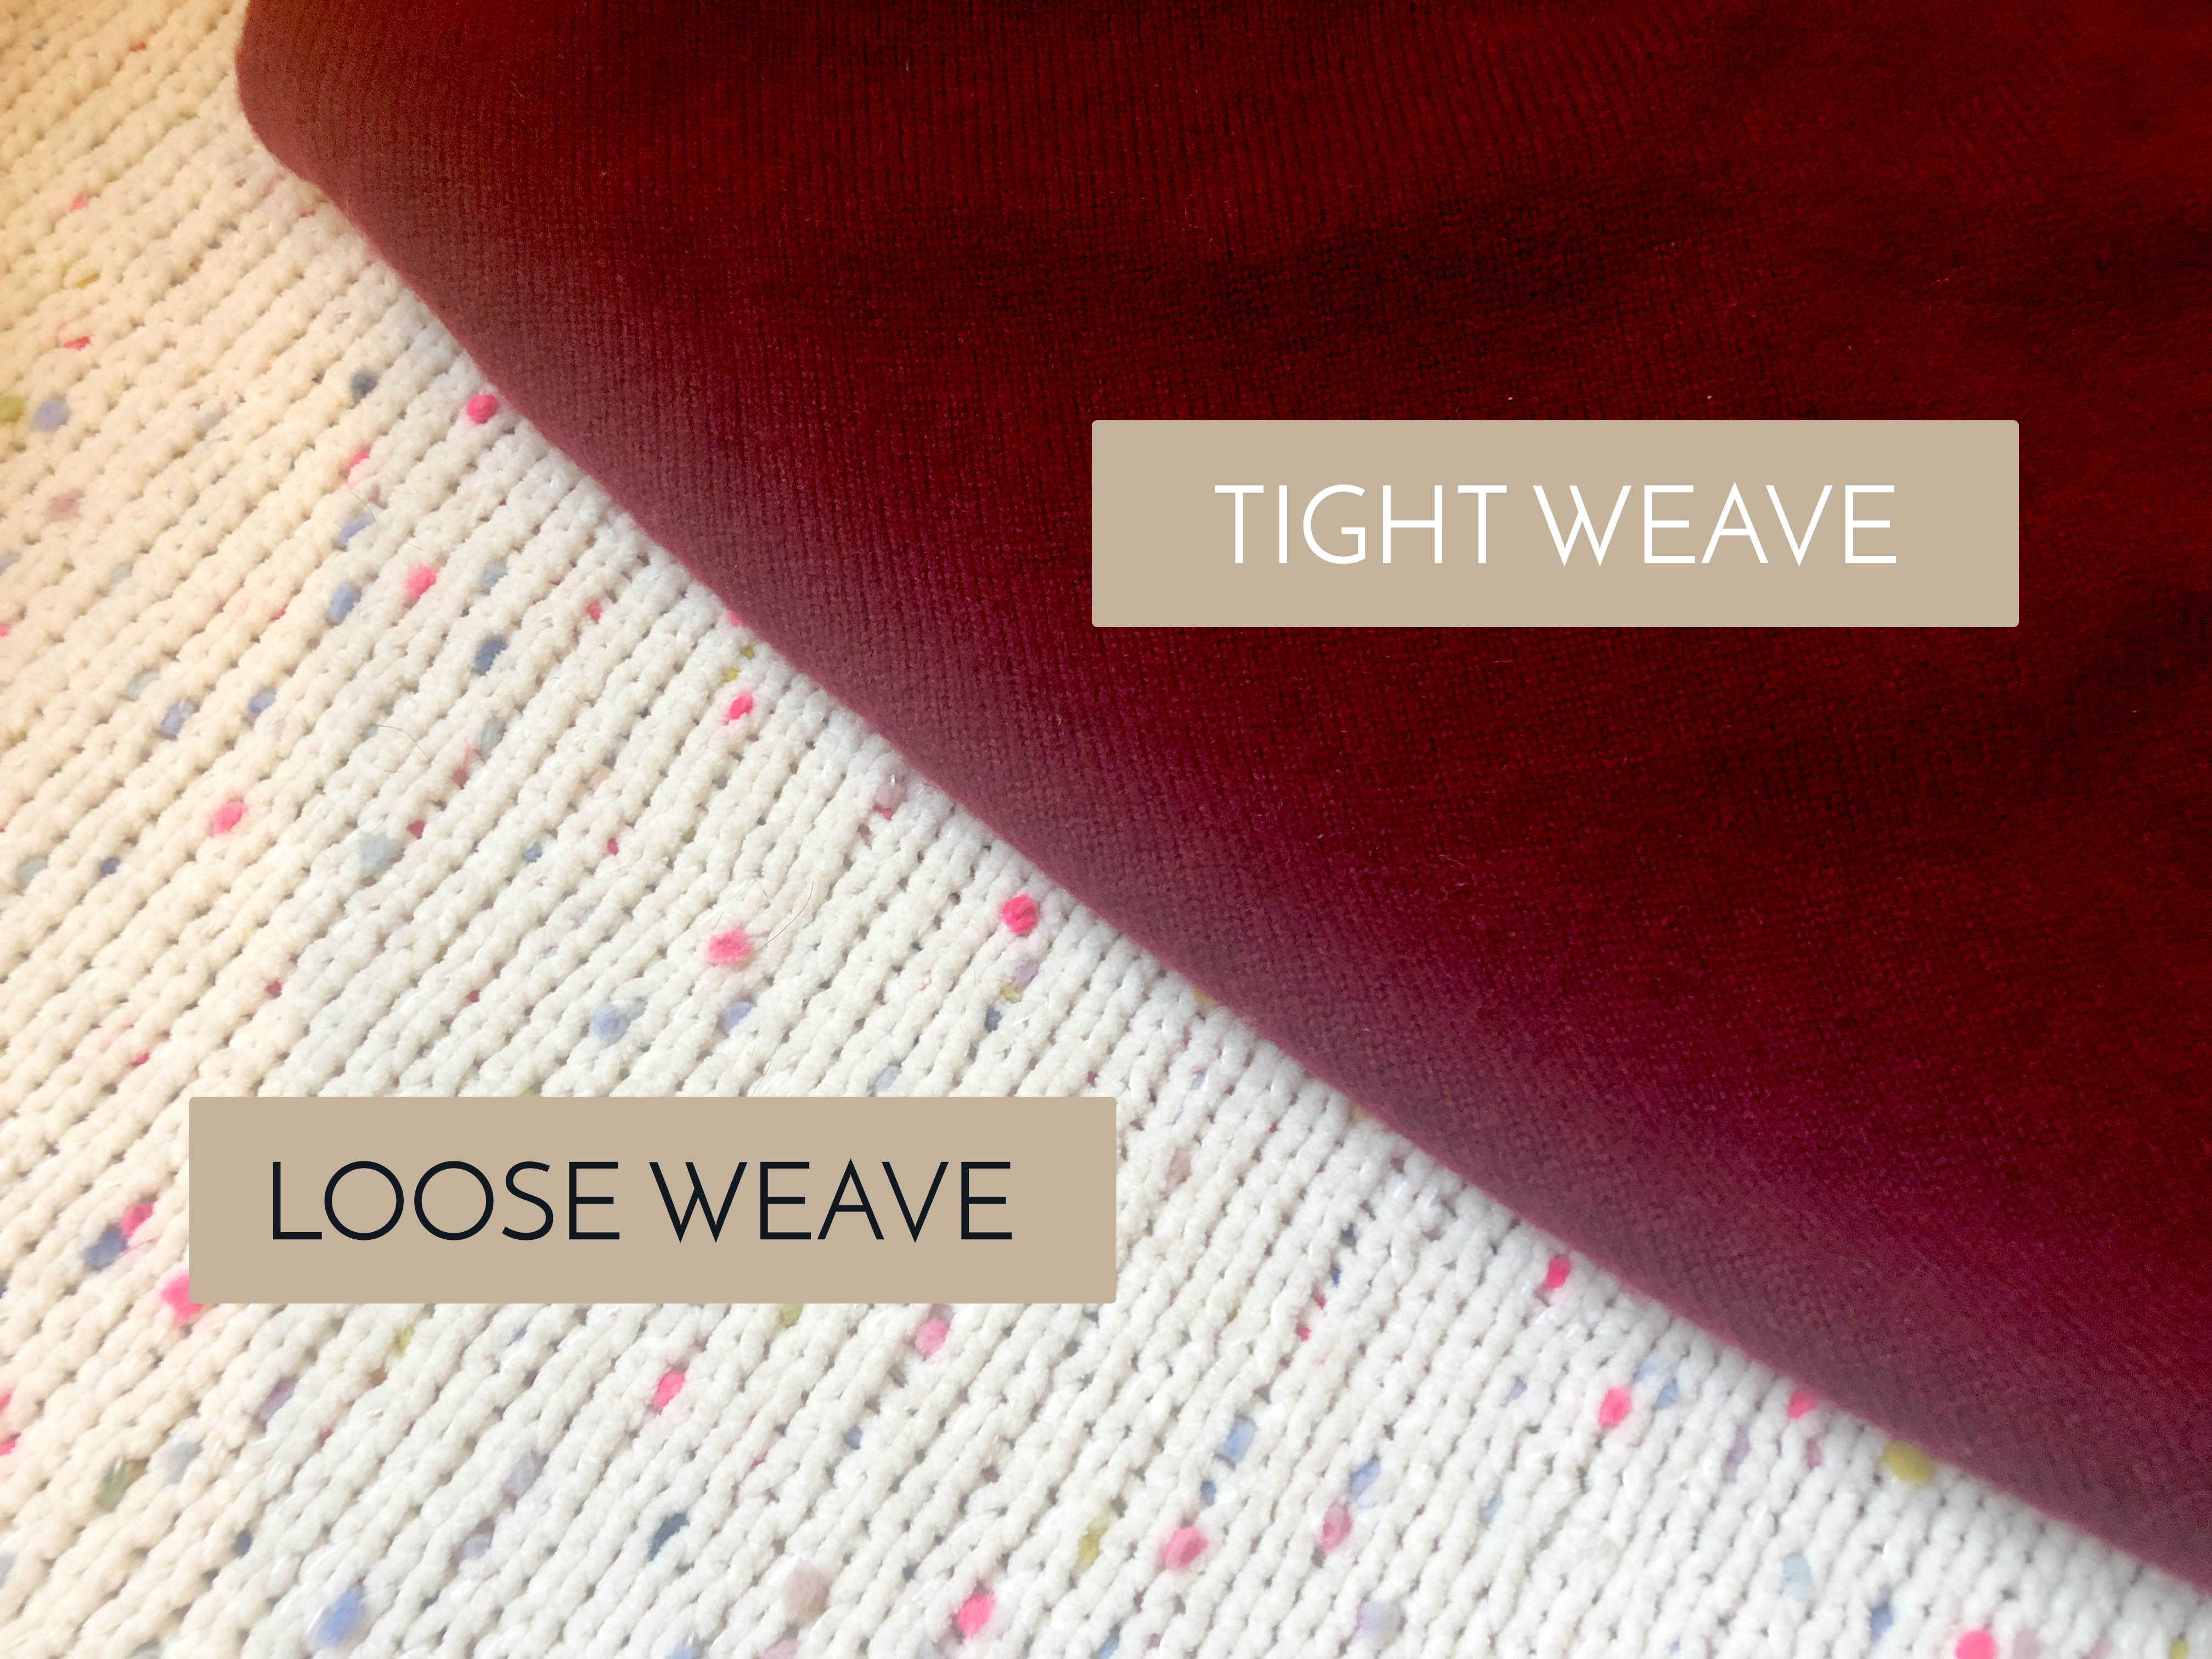 Loose and tight weave woven woollen fabrics